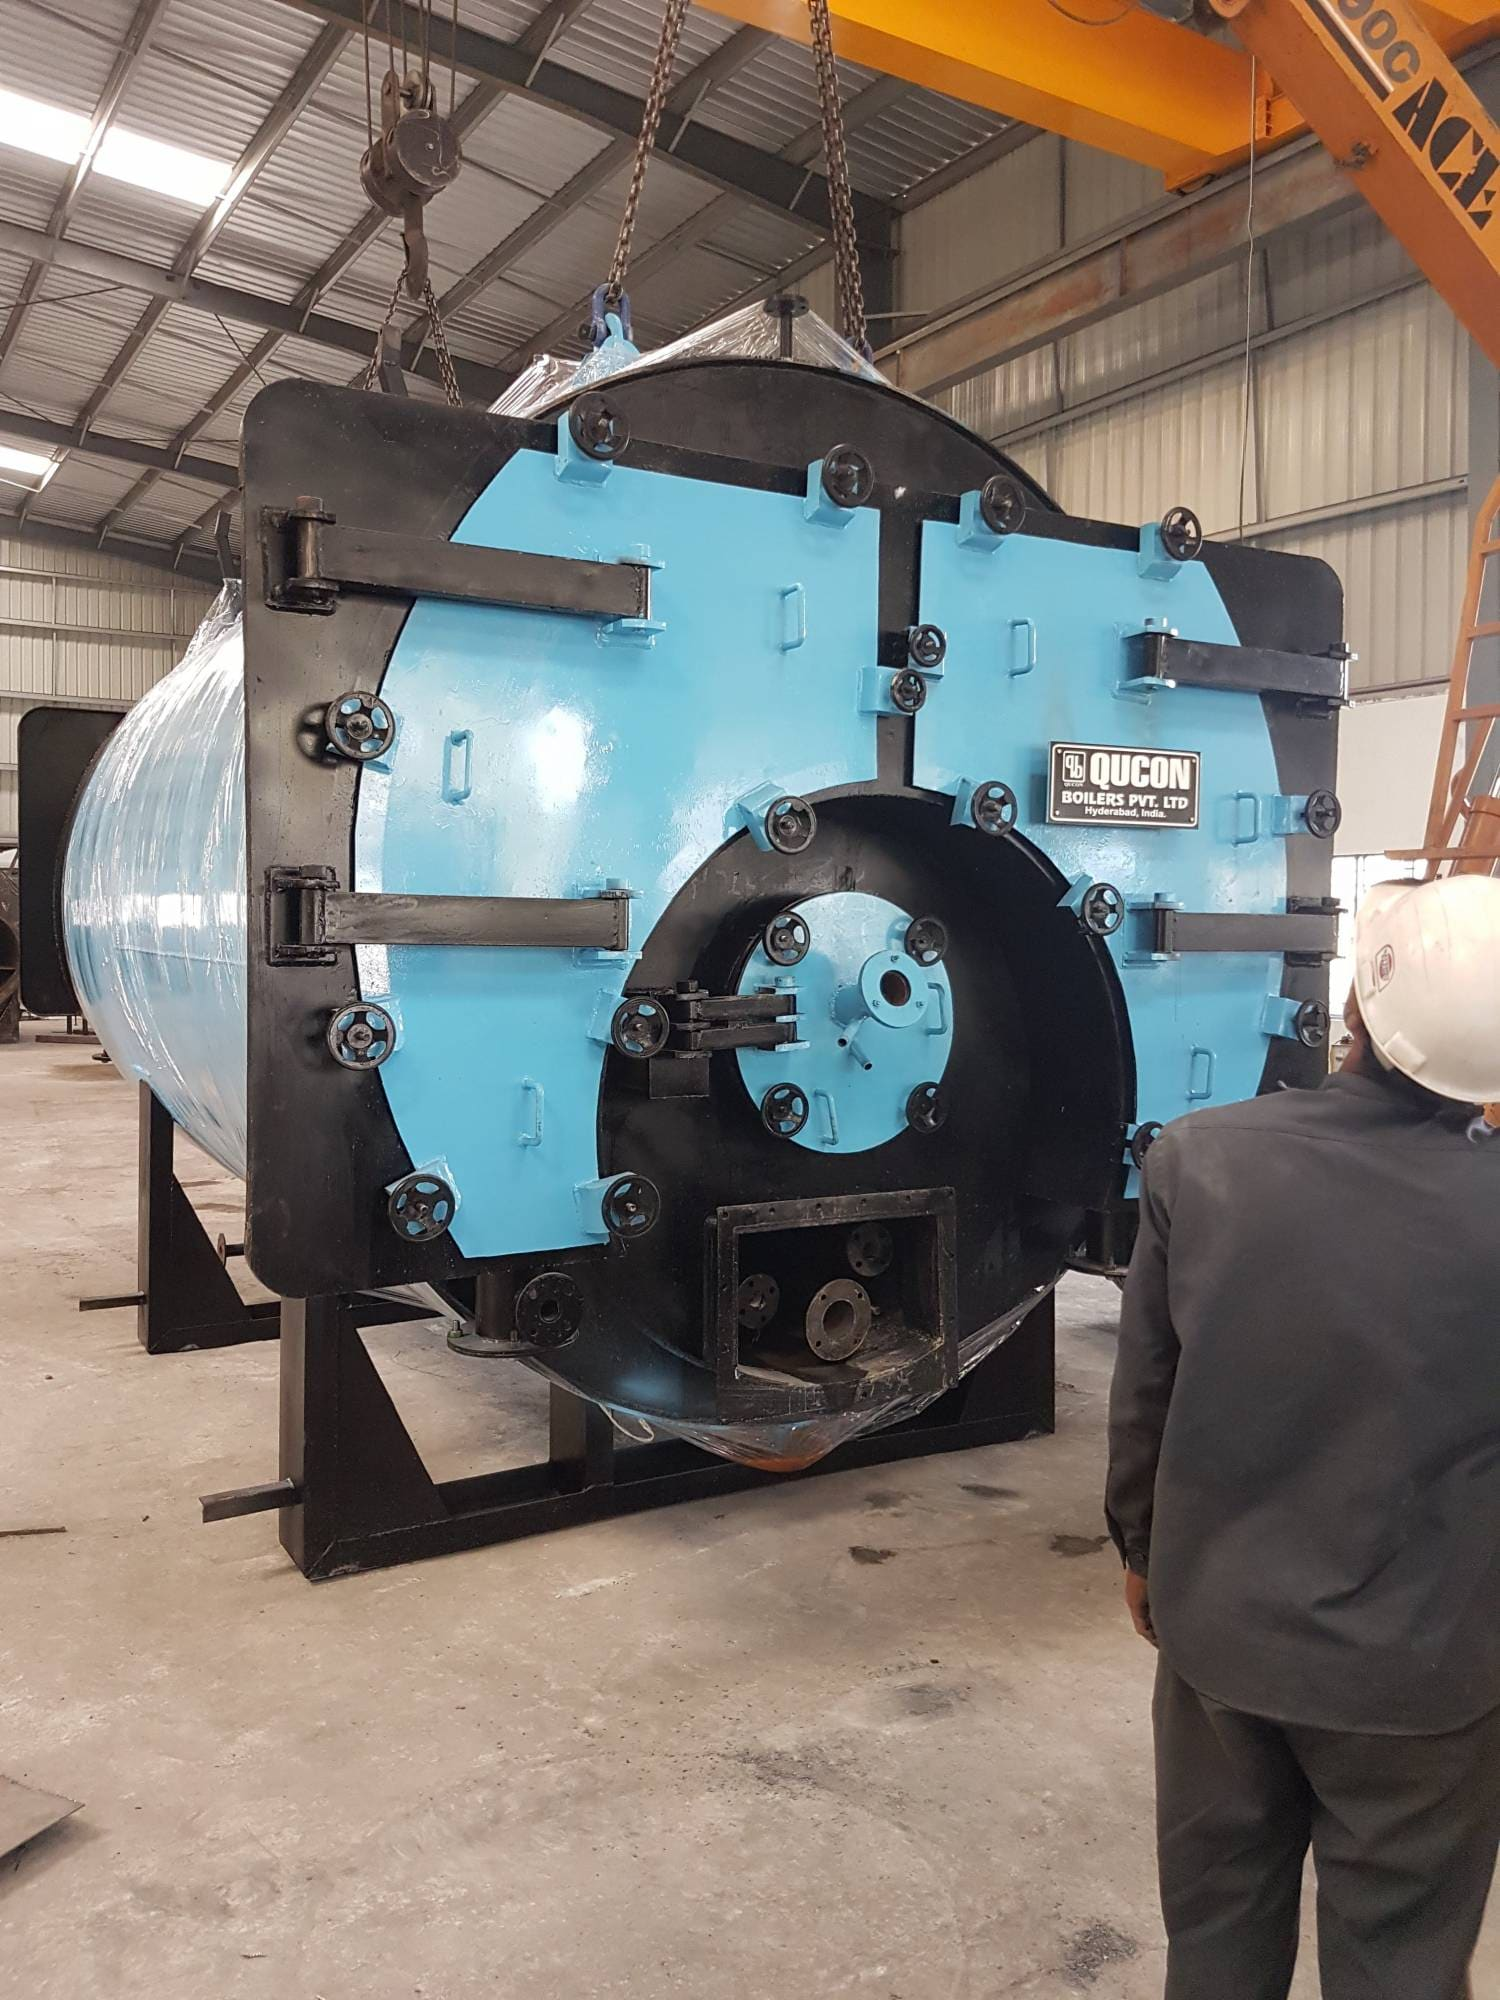 Top 50 Ibr Steam Boiler Manufacturers in Nacharam, Hyderabad - Justdial